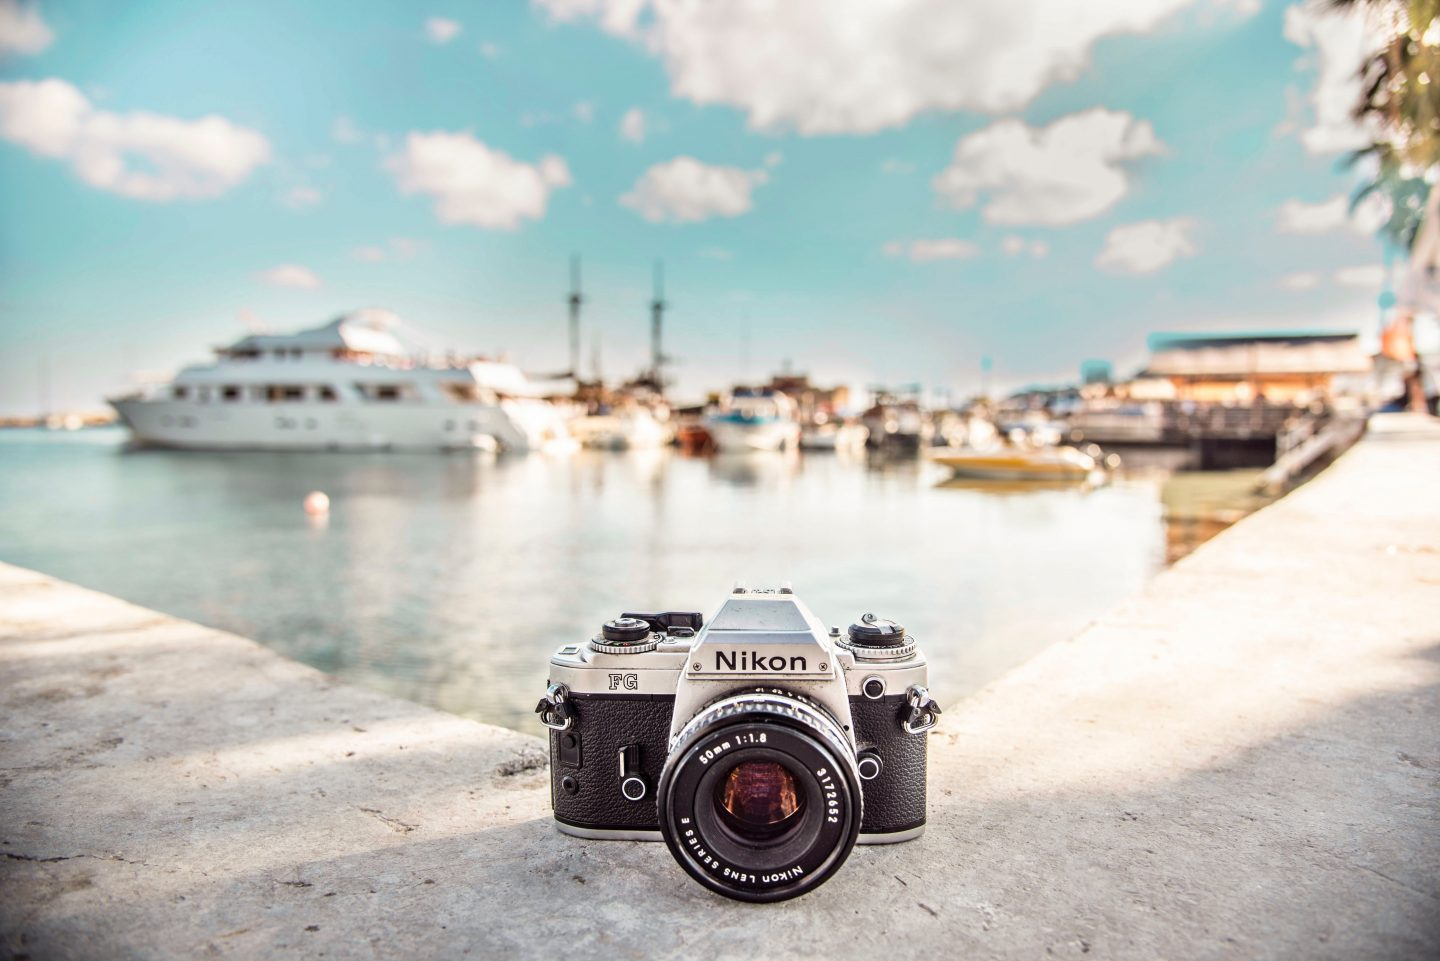 a nikon camera with a harbour and boats in the ocean in the background, blue sky during summer